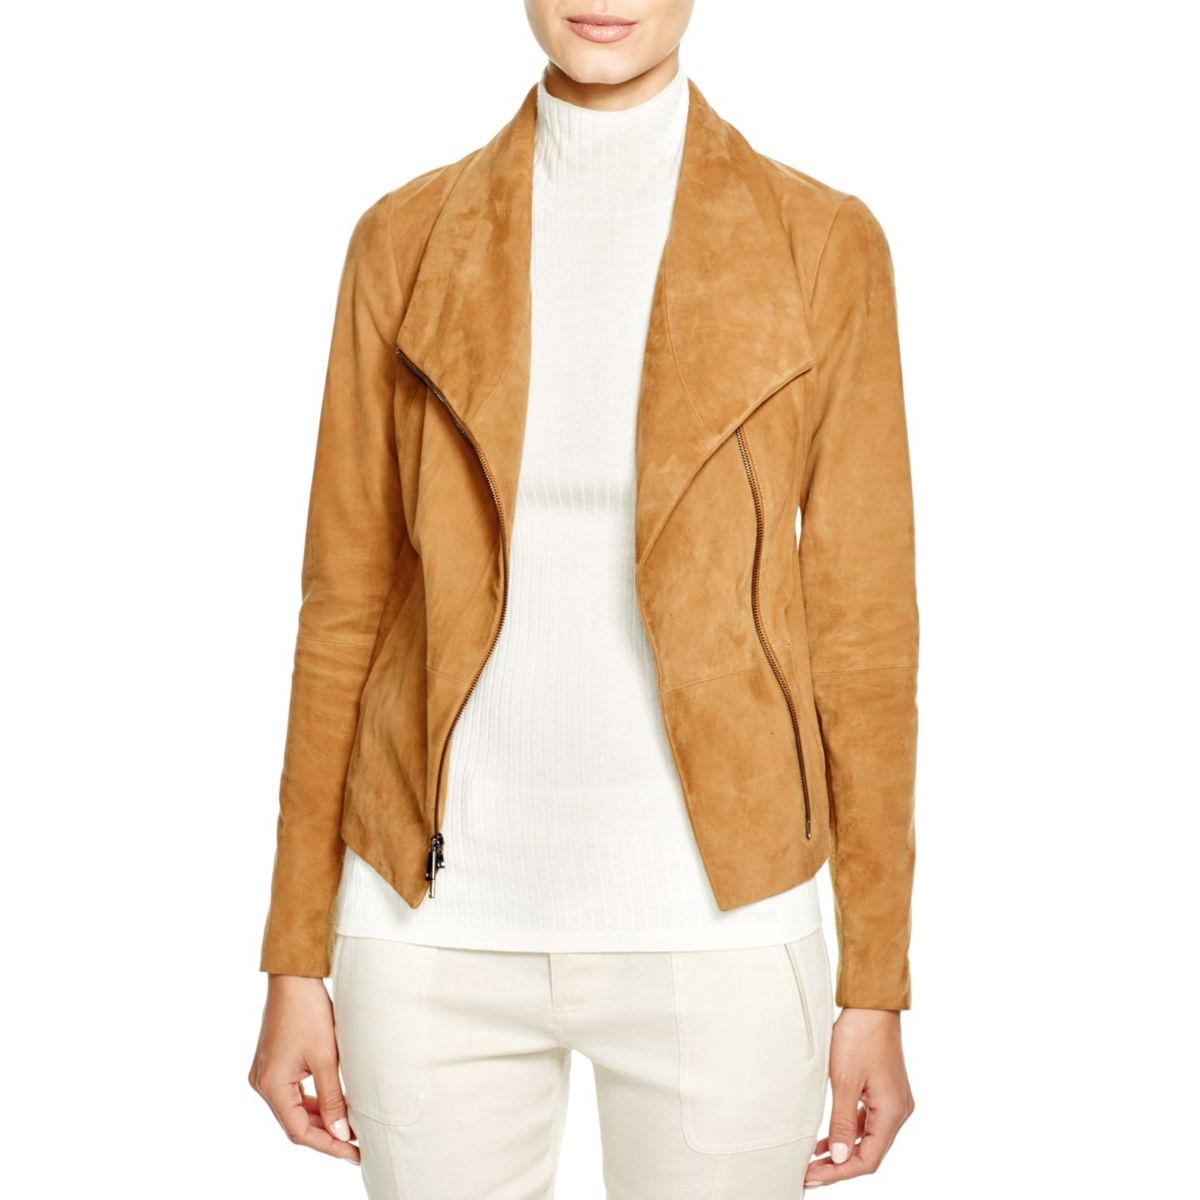 Vince 4421 Womens Leather Panel Long Sleeves Bomber Jacket Coat BHFO